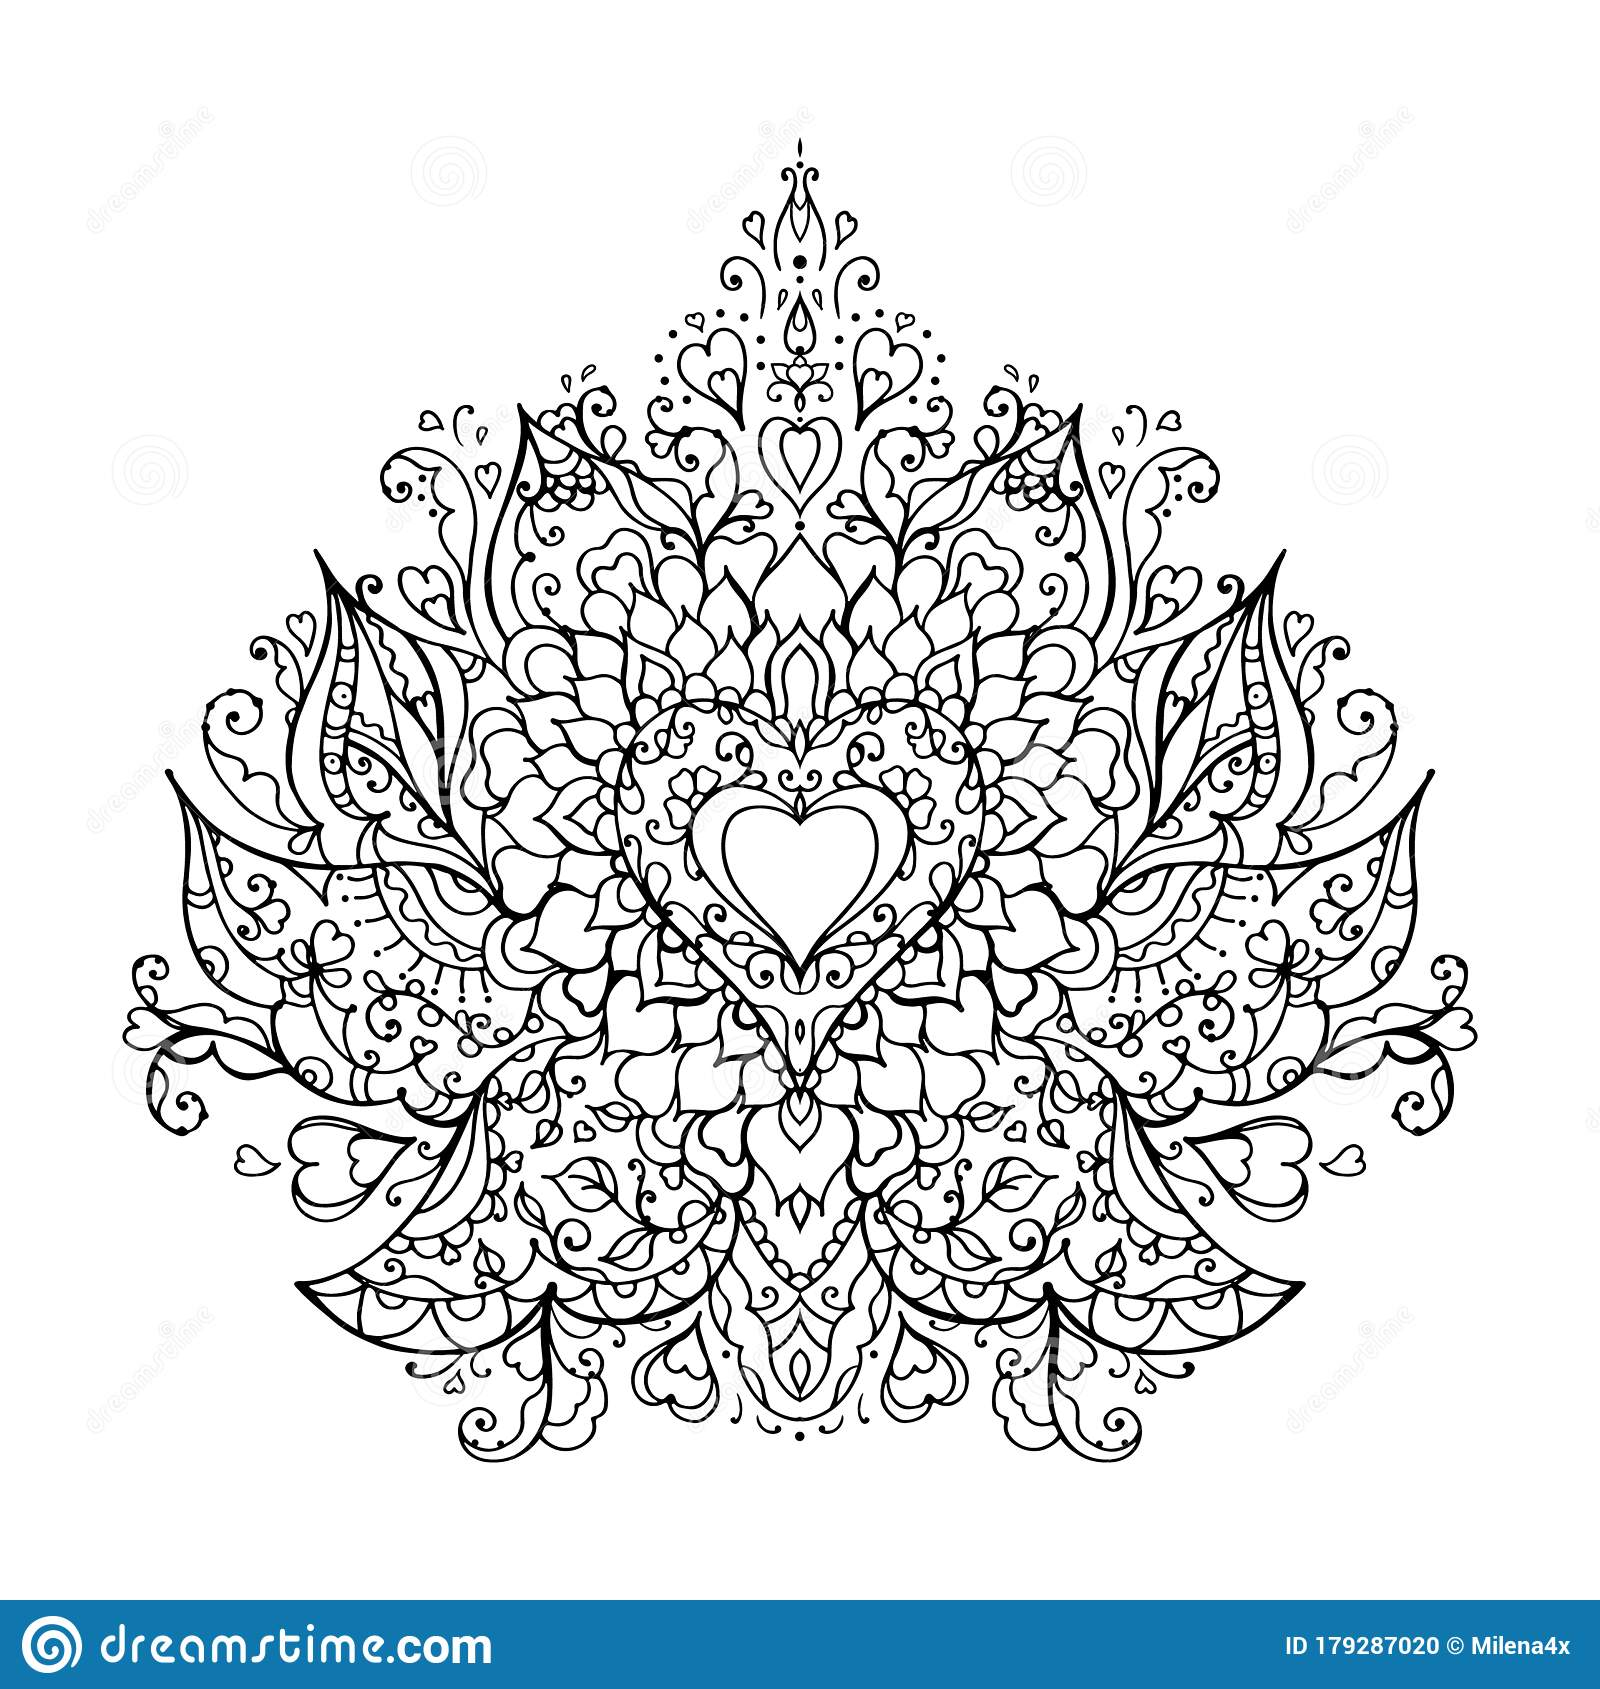 Mandala Art For Meditation Color Therapy Adult Coloring Pages Stress Relief And Relaxation Heart For Valentine S Day Stock Vector Illustration Of Banner Funky 179287020